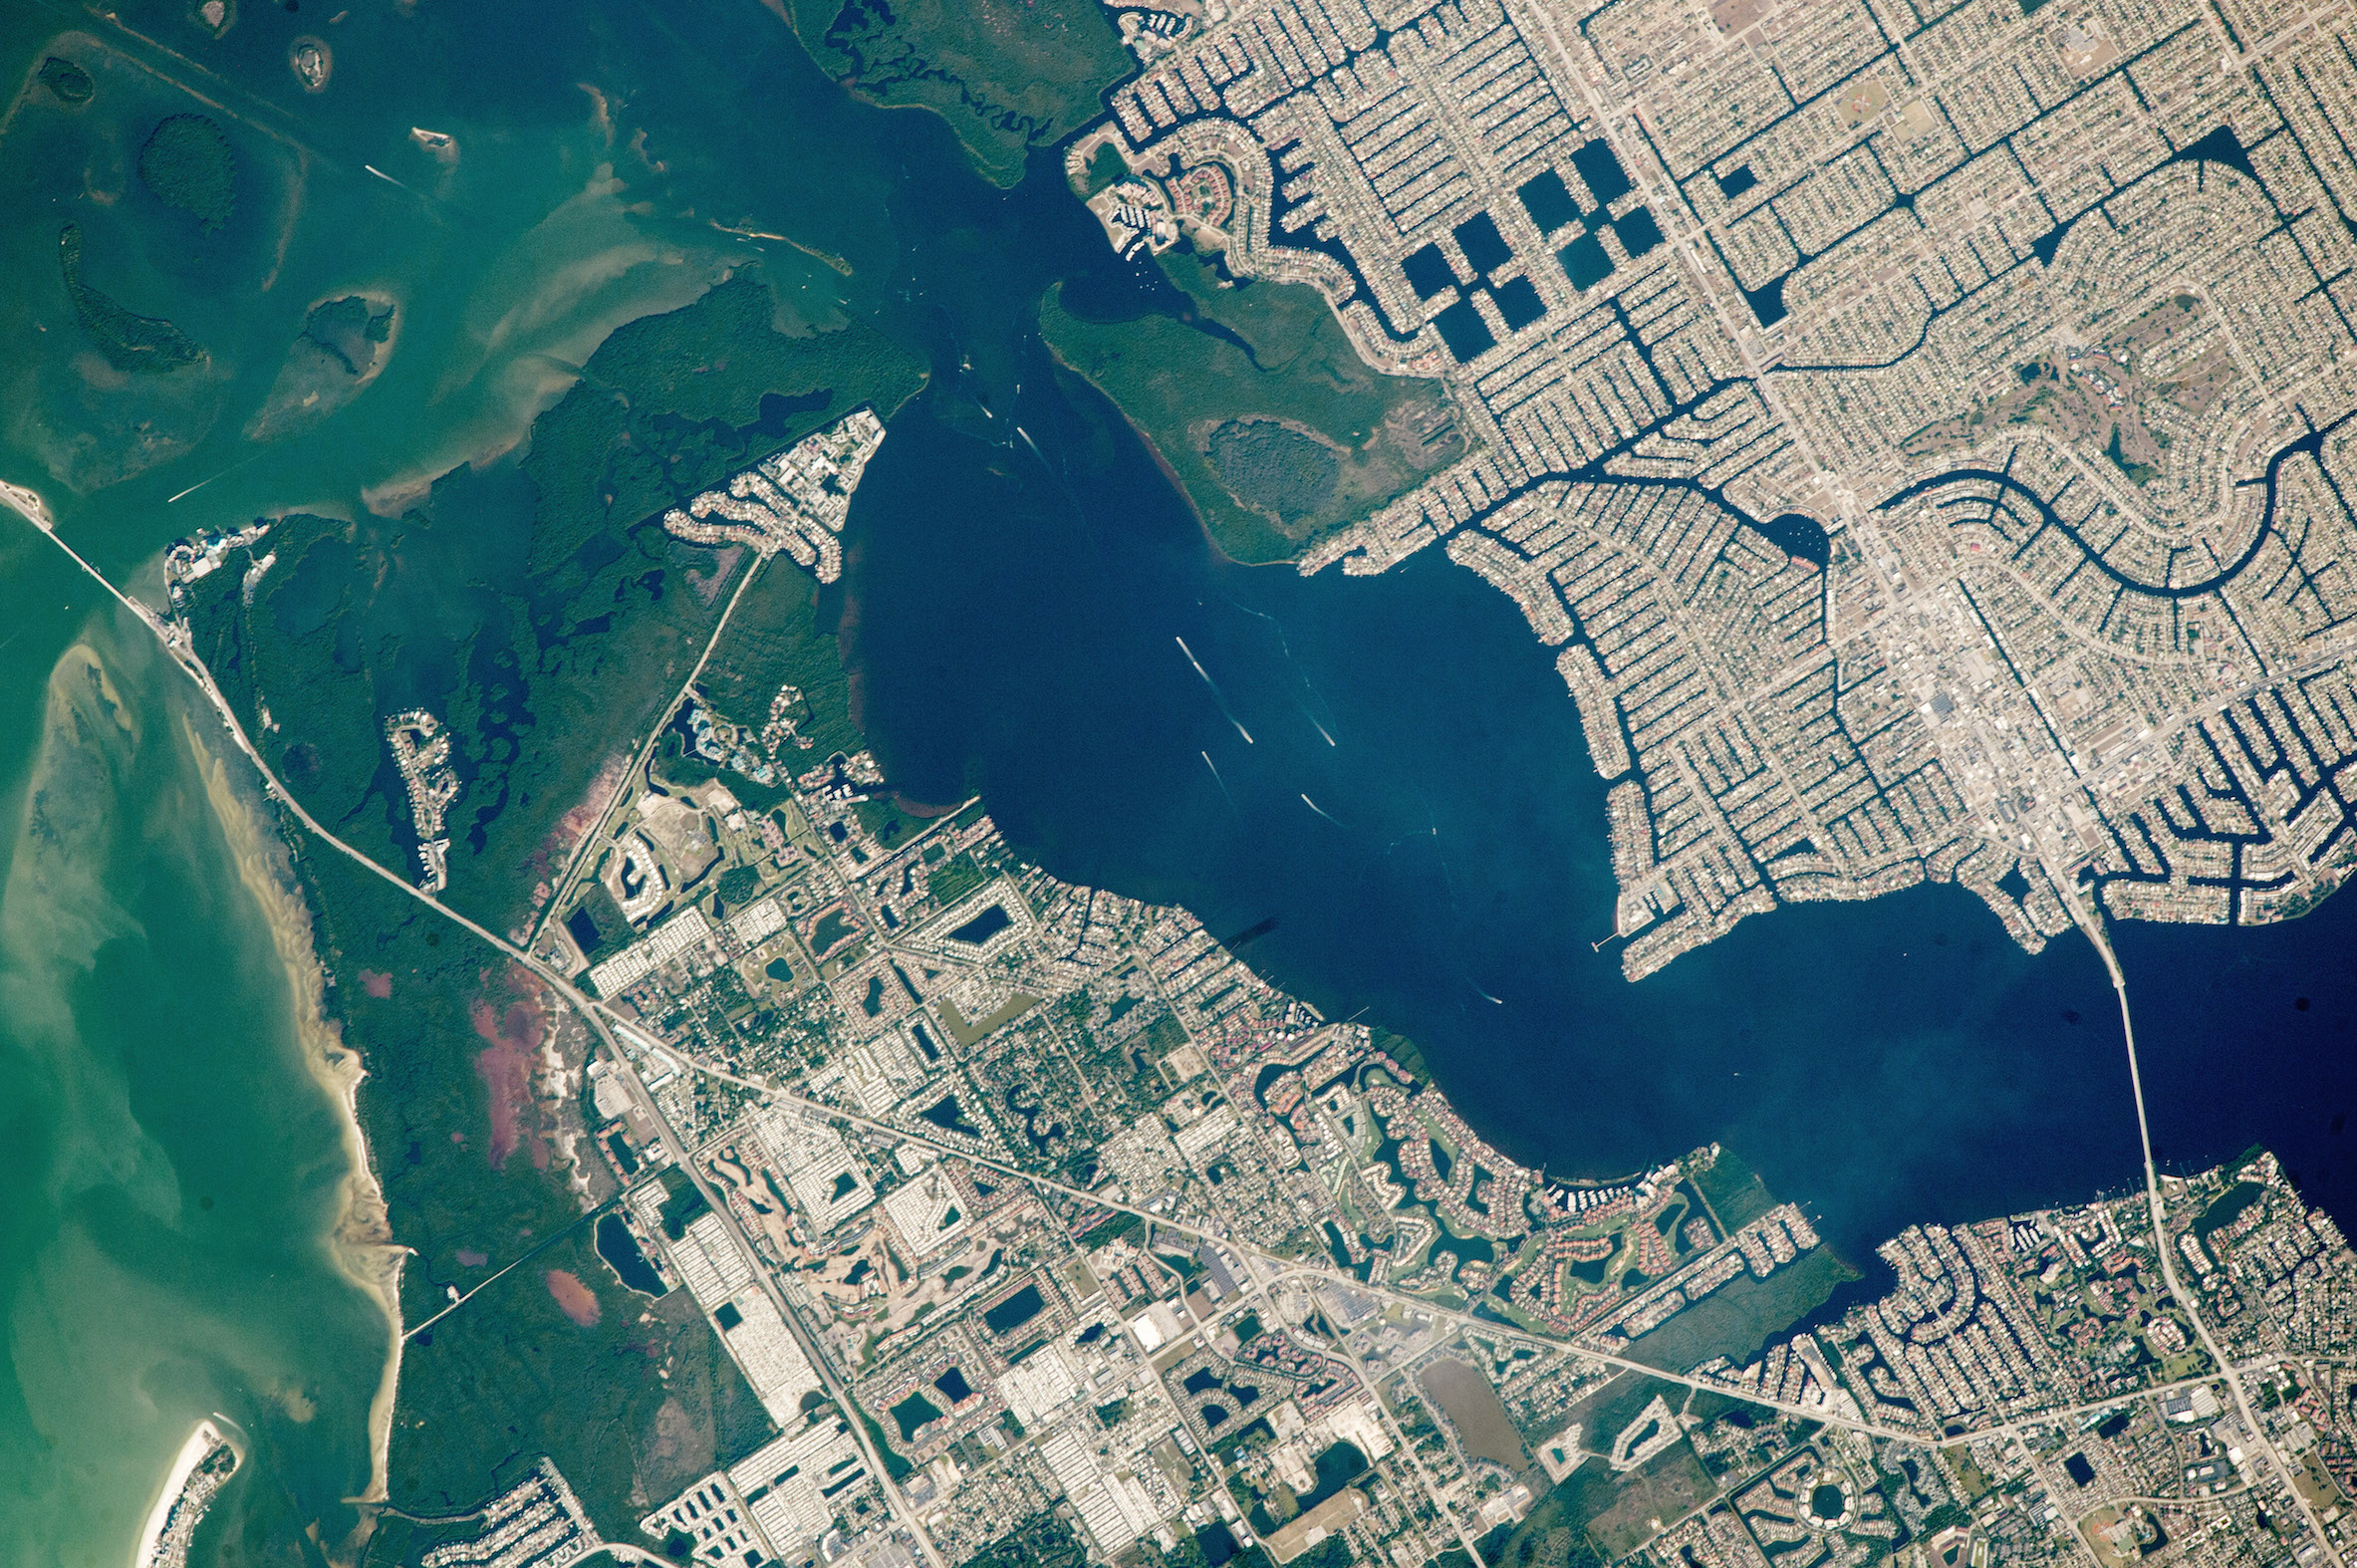 Today's Image of the Day comes thanks to the NASA Earth Observatory and features a look at Cape Coral, Florida from the International Space Station.